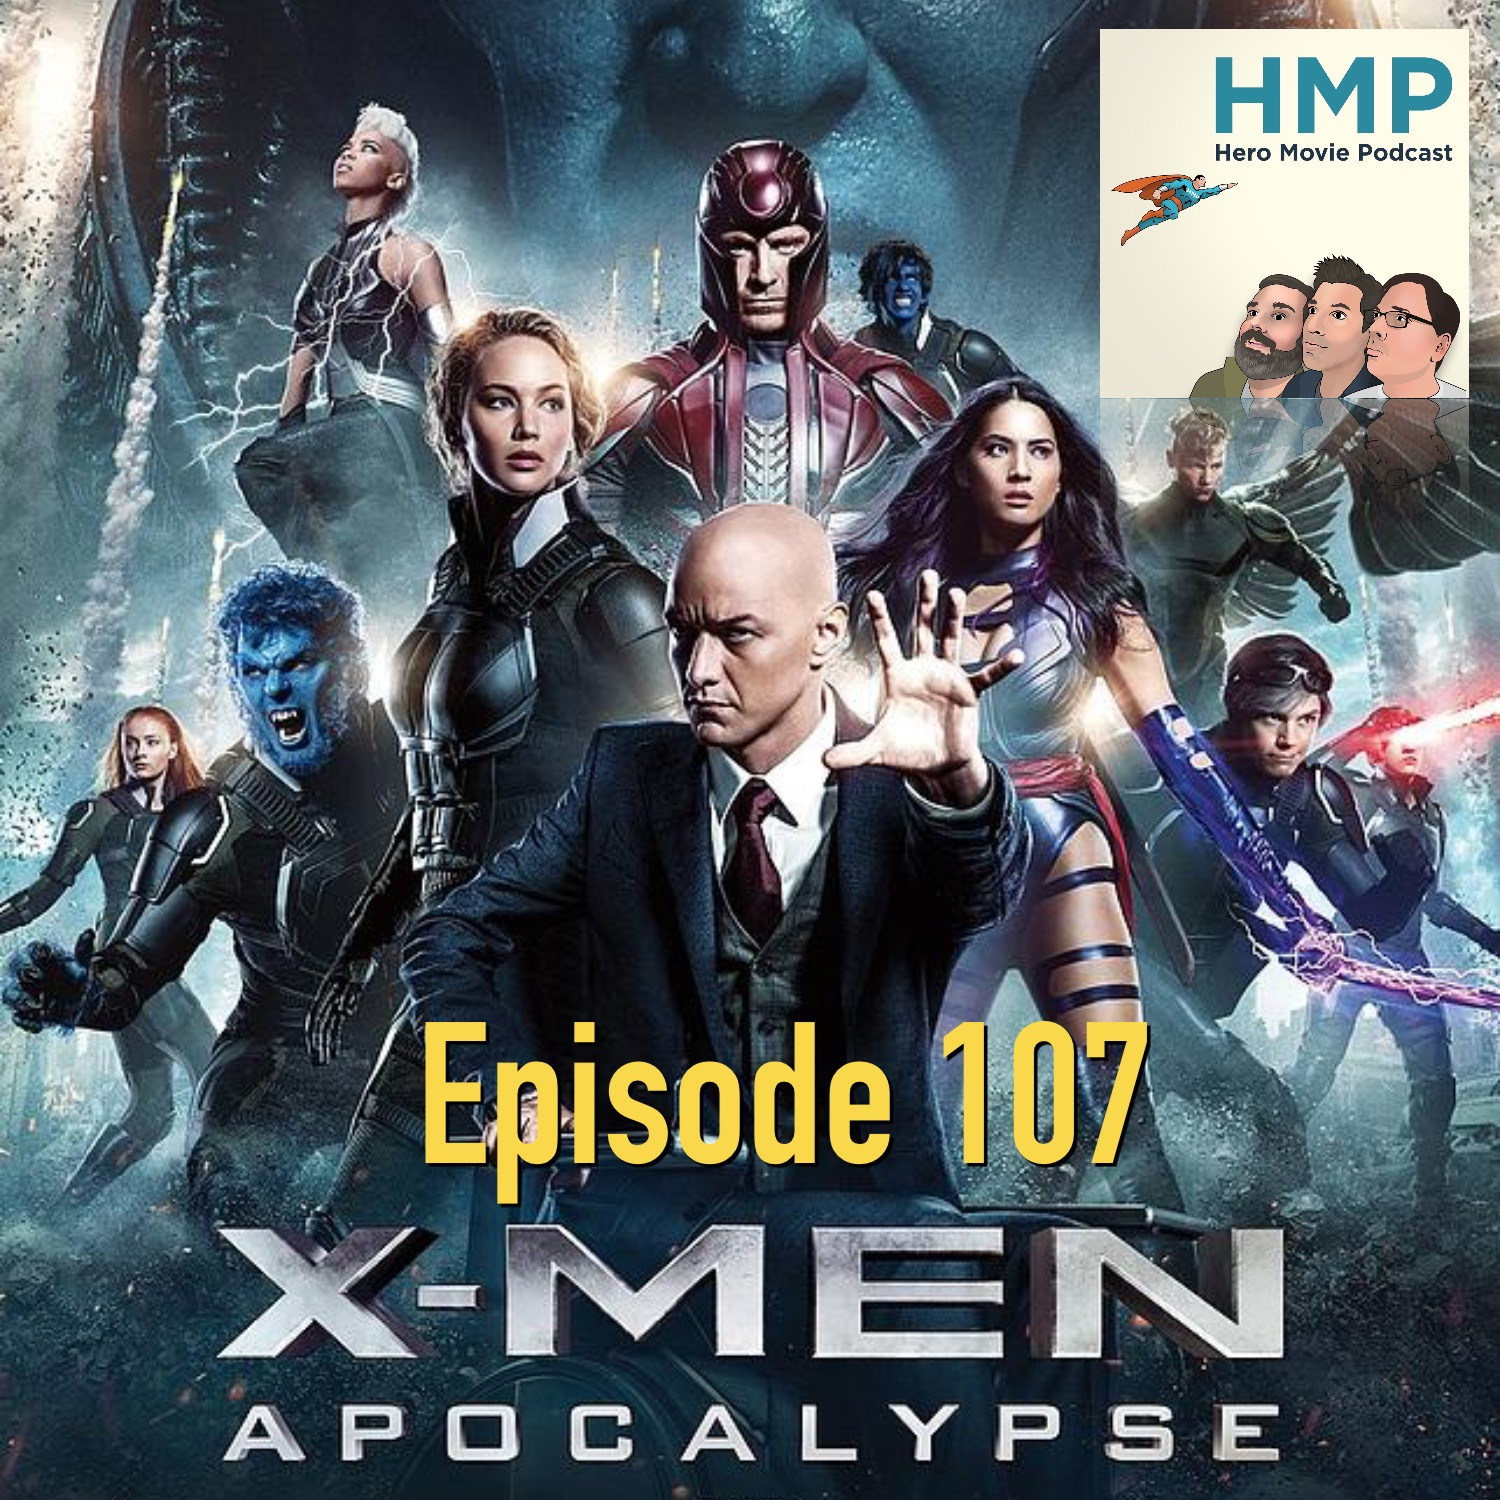 Episode 107- X-Men Apocalypse